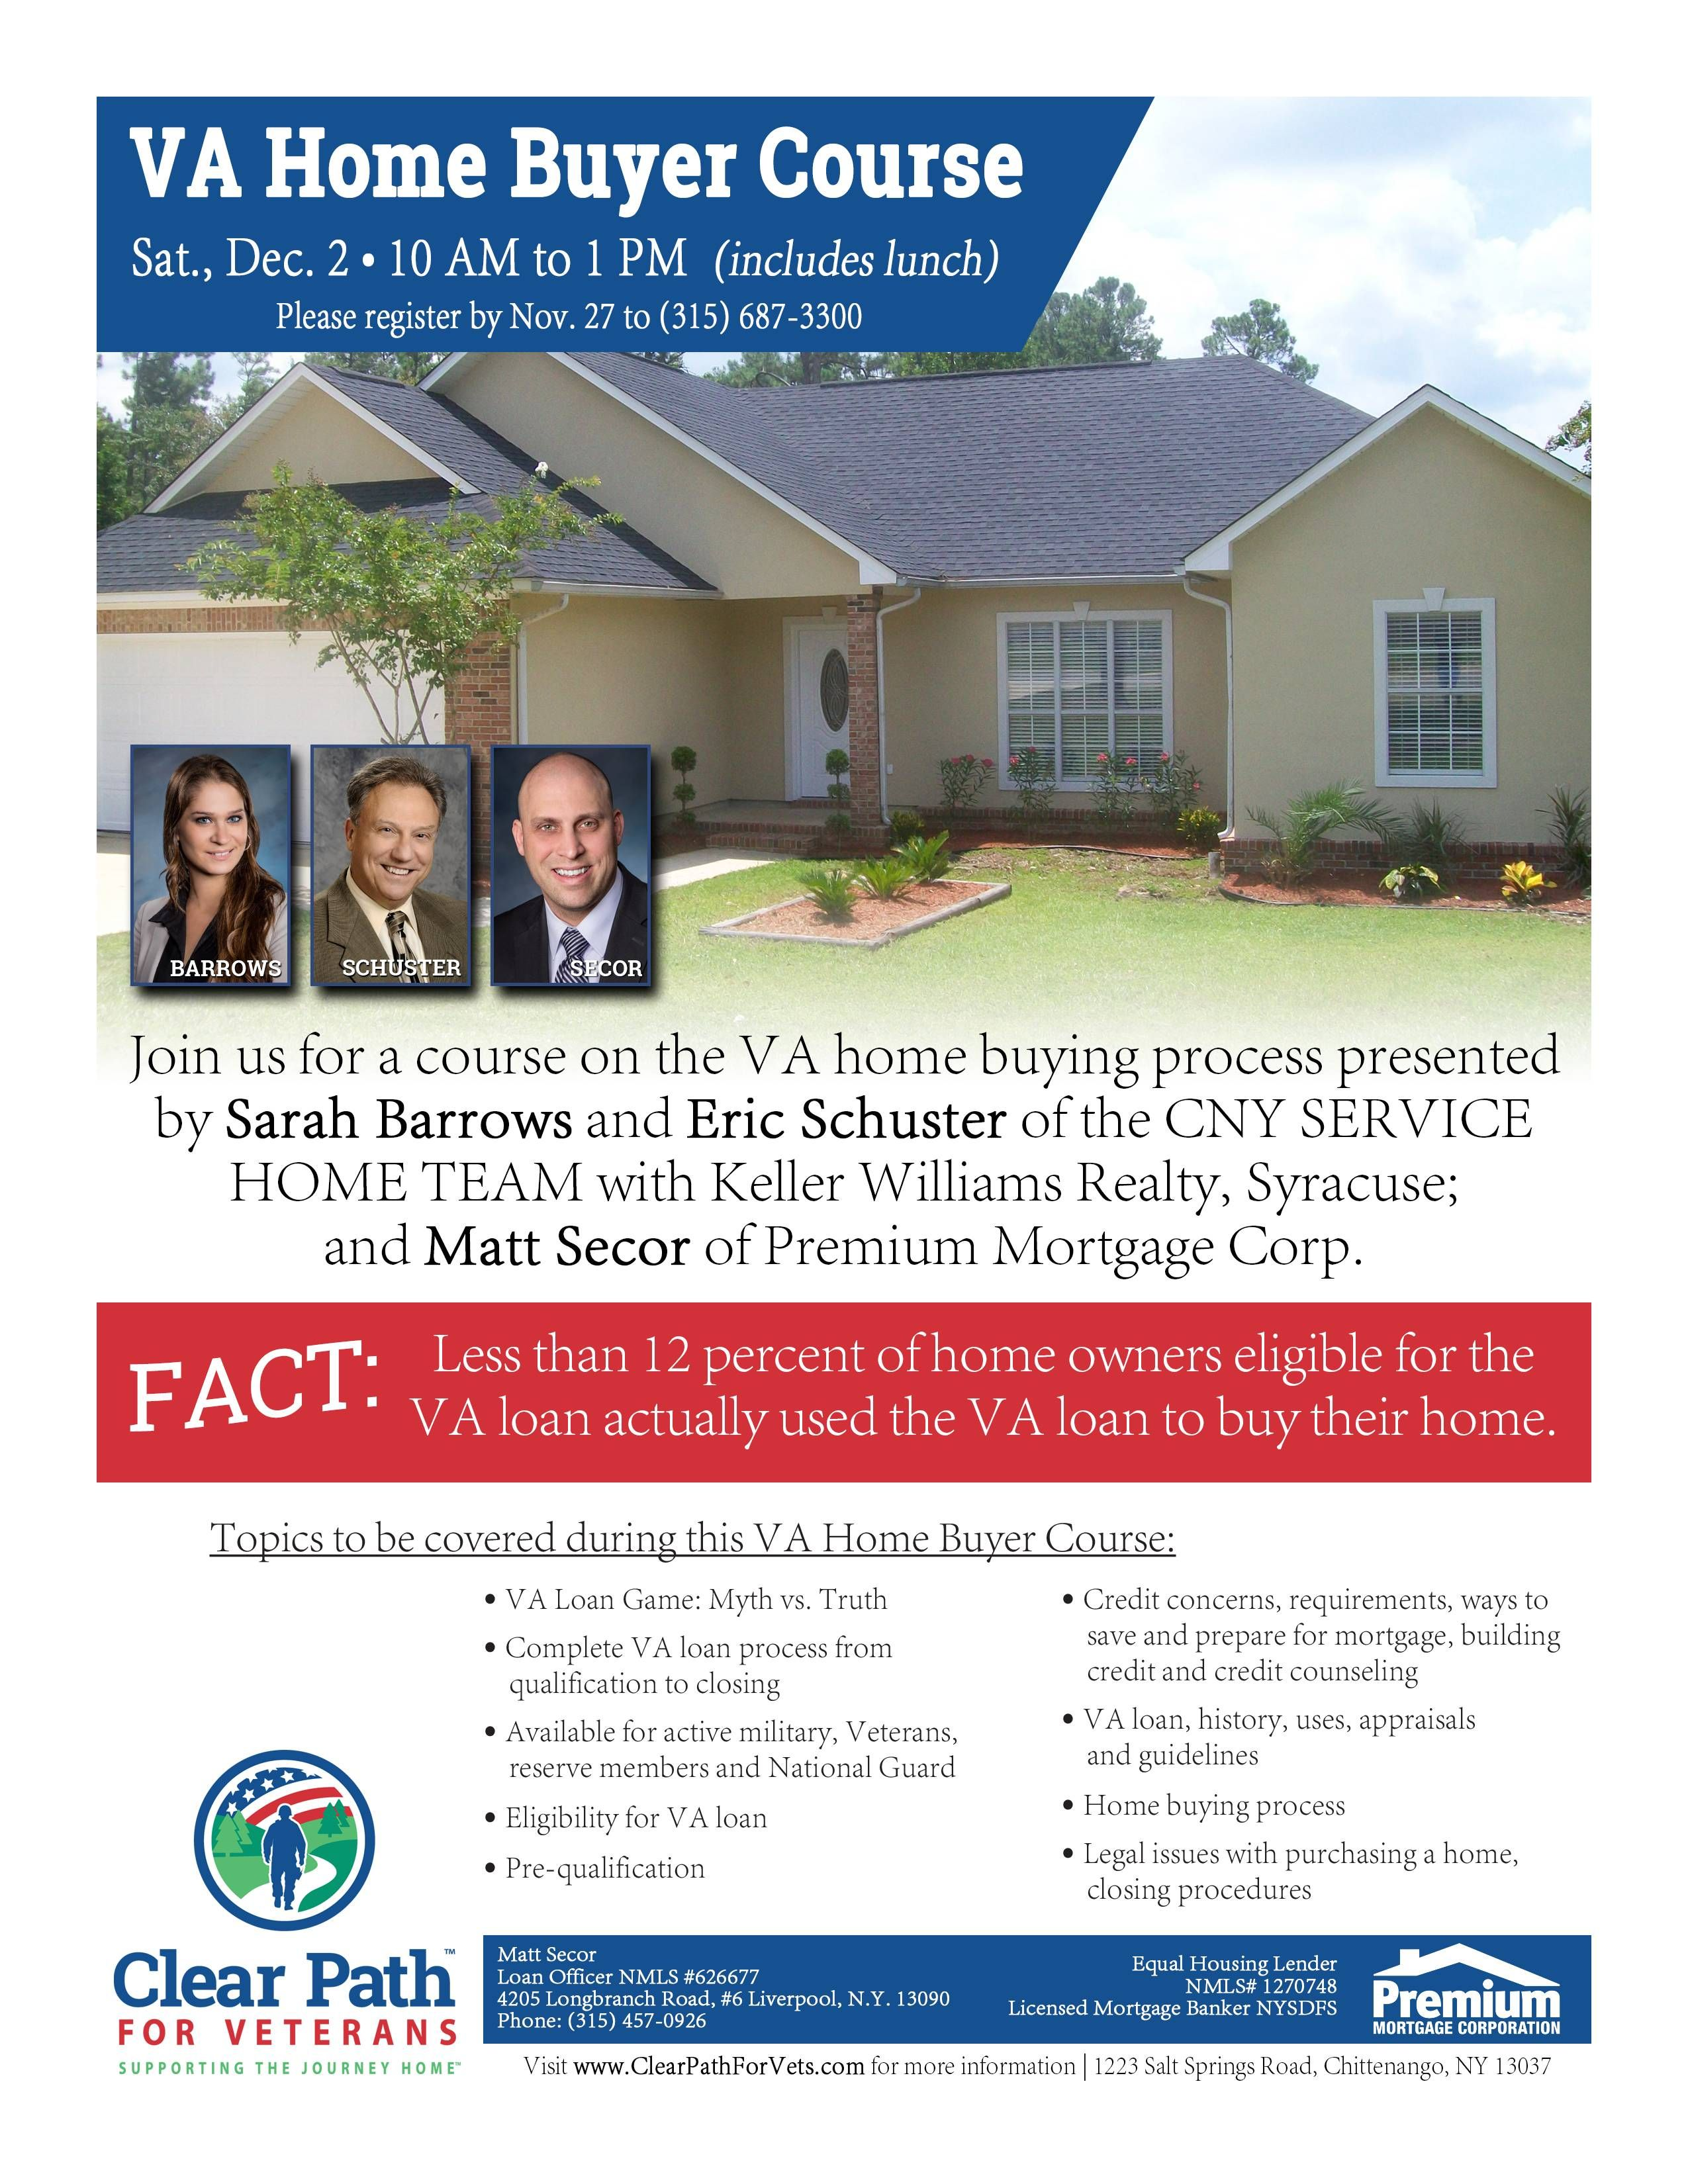 Va Home Buyer Course At Clear Path For Veterans With Images